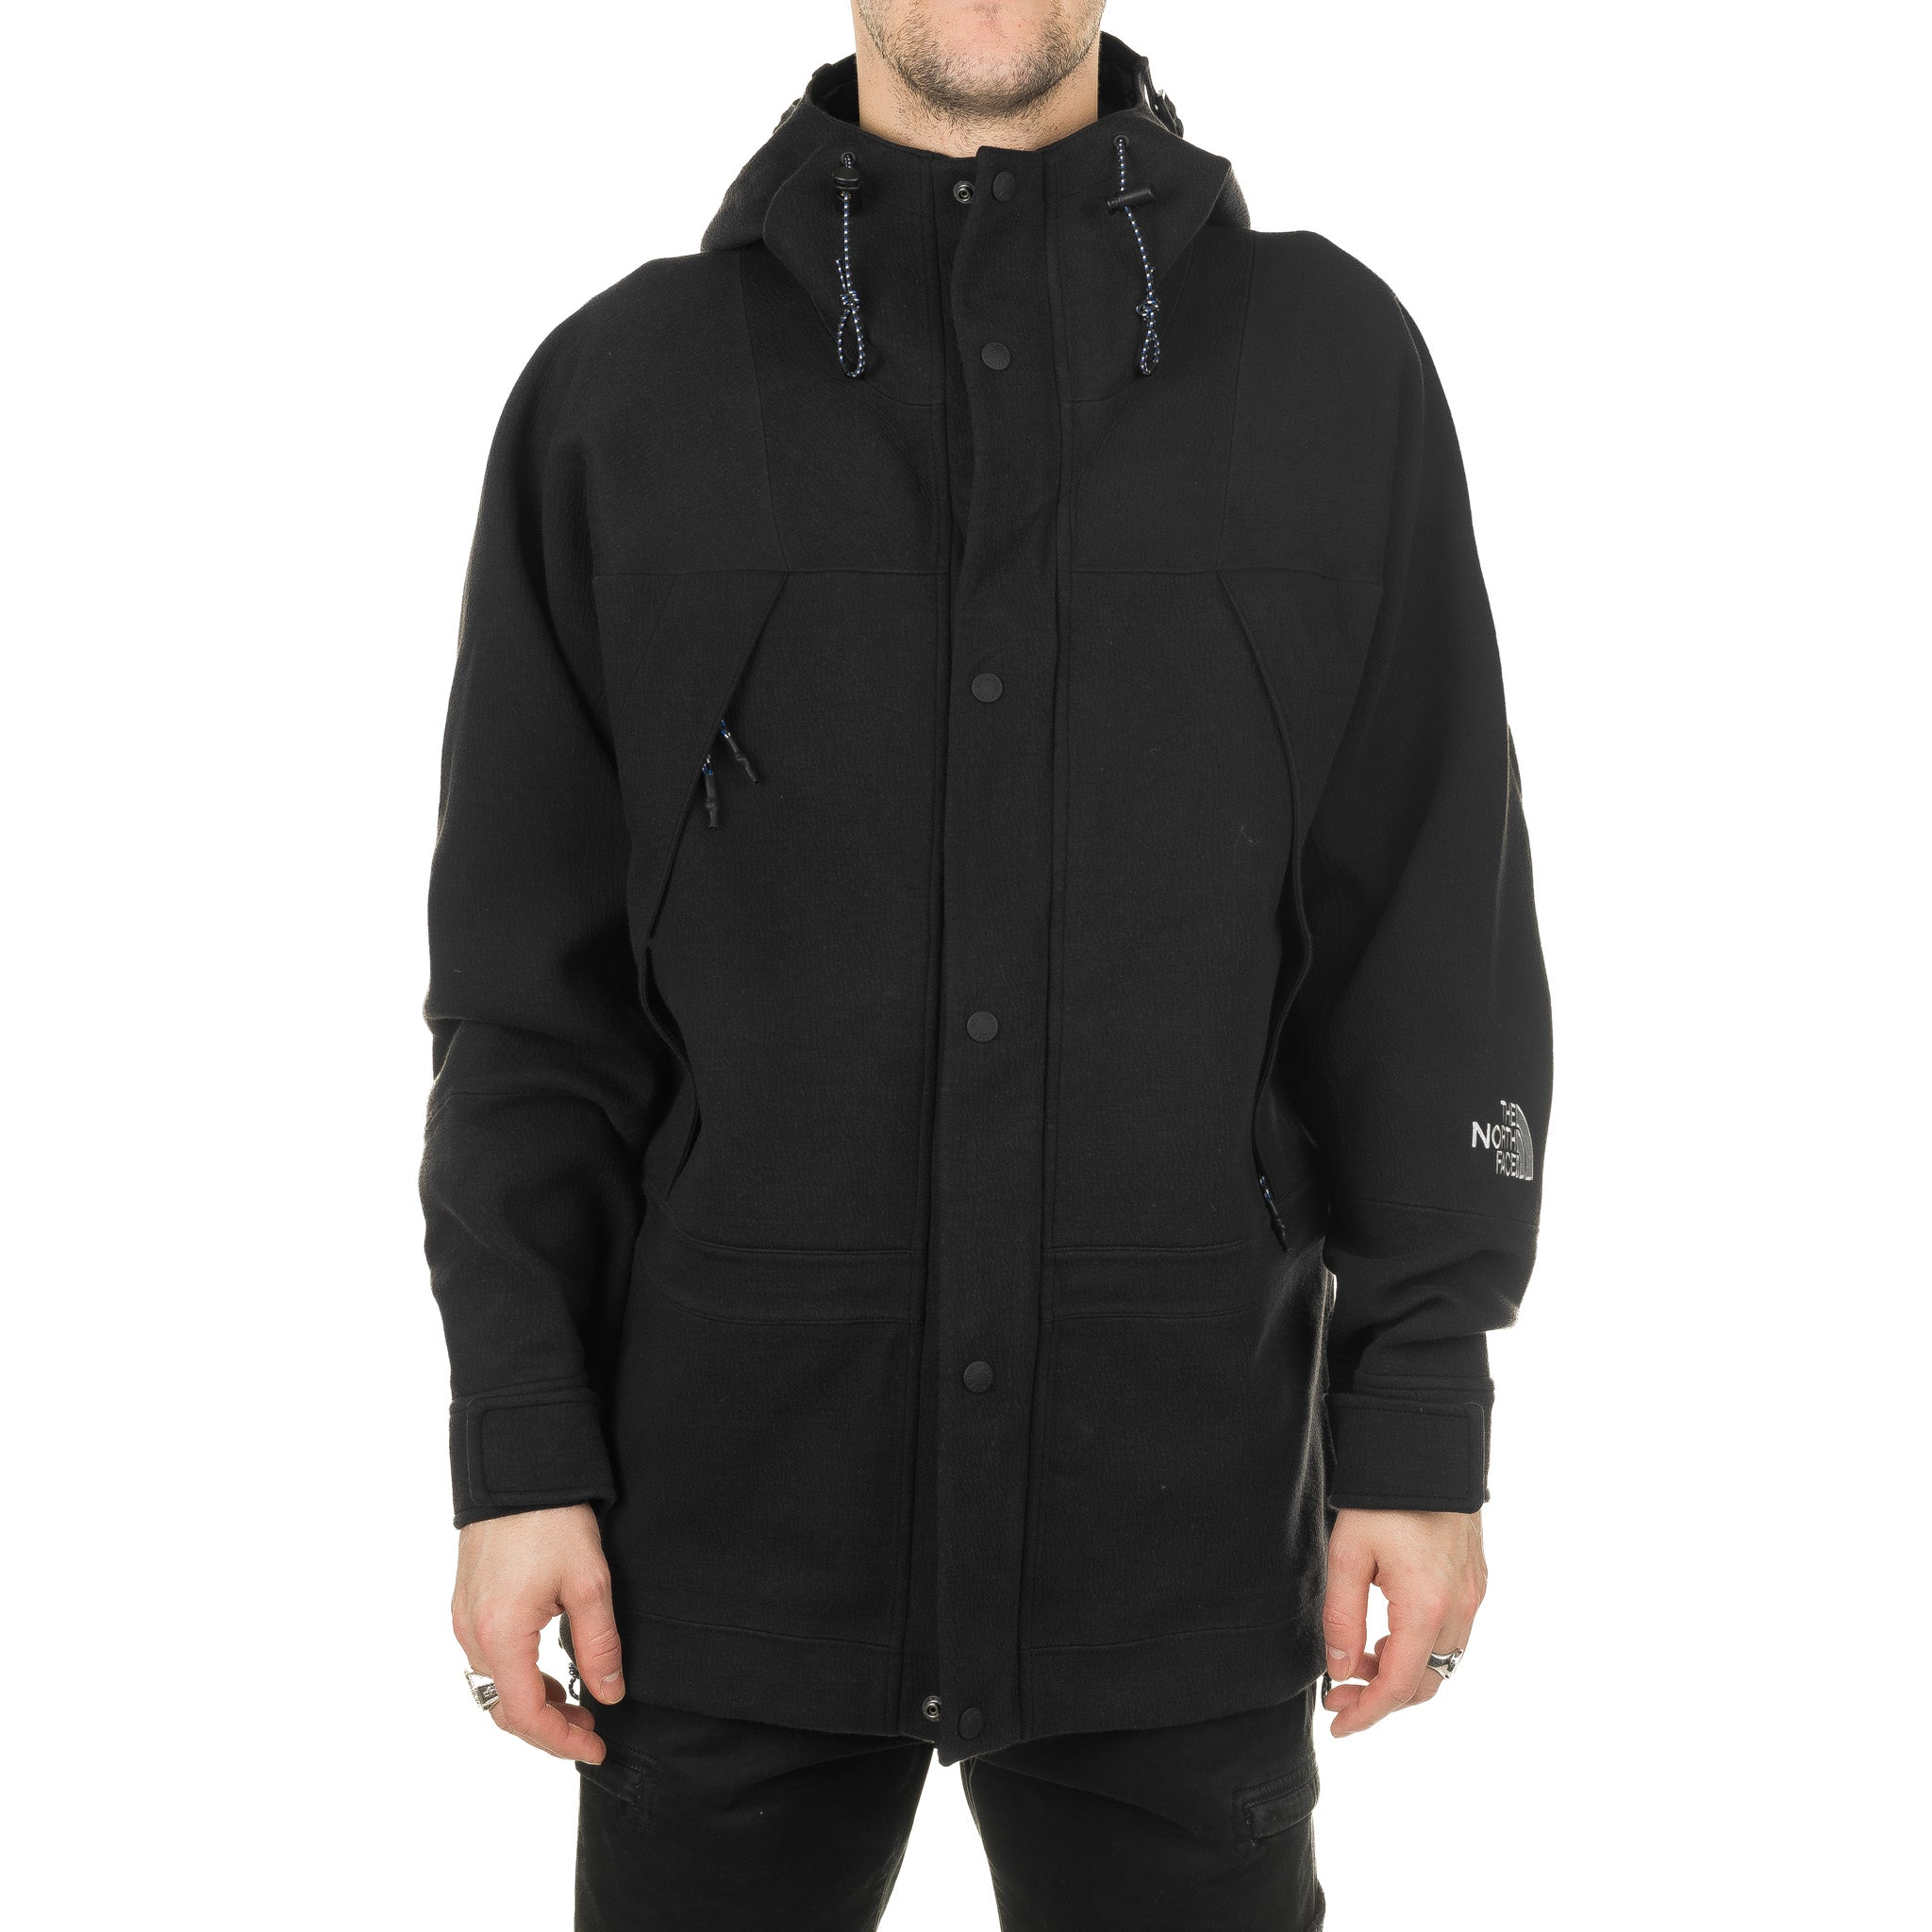 TNF Black Series Space Knit Mountain Jacket NF0A4AMG Black